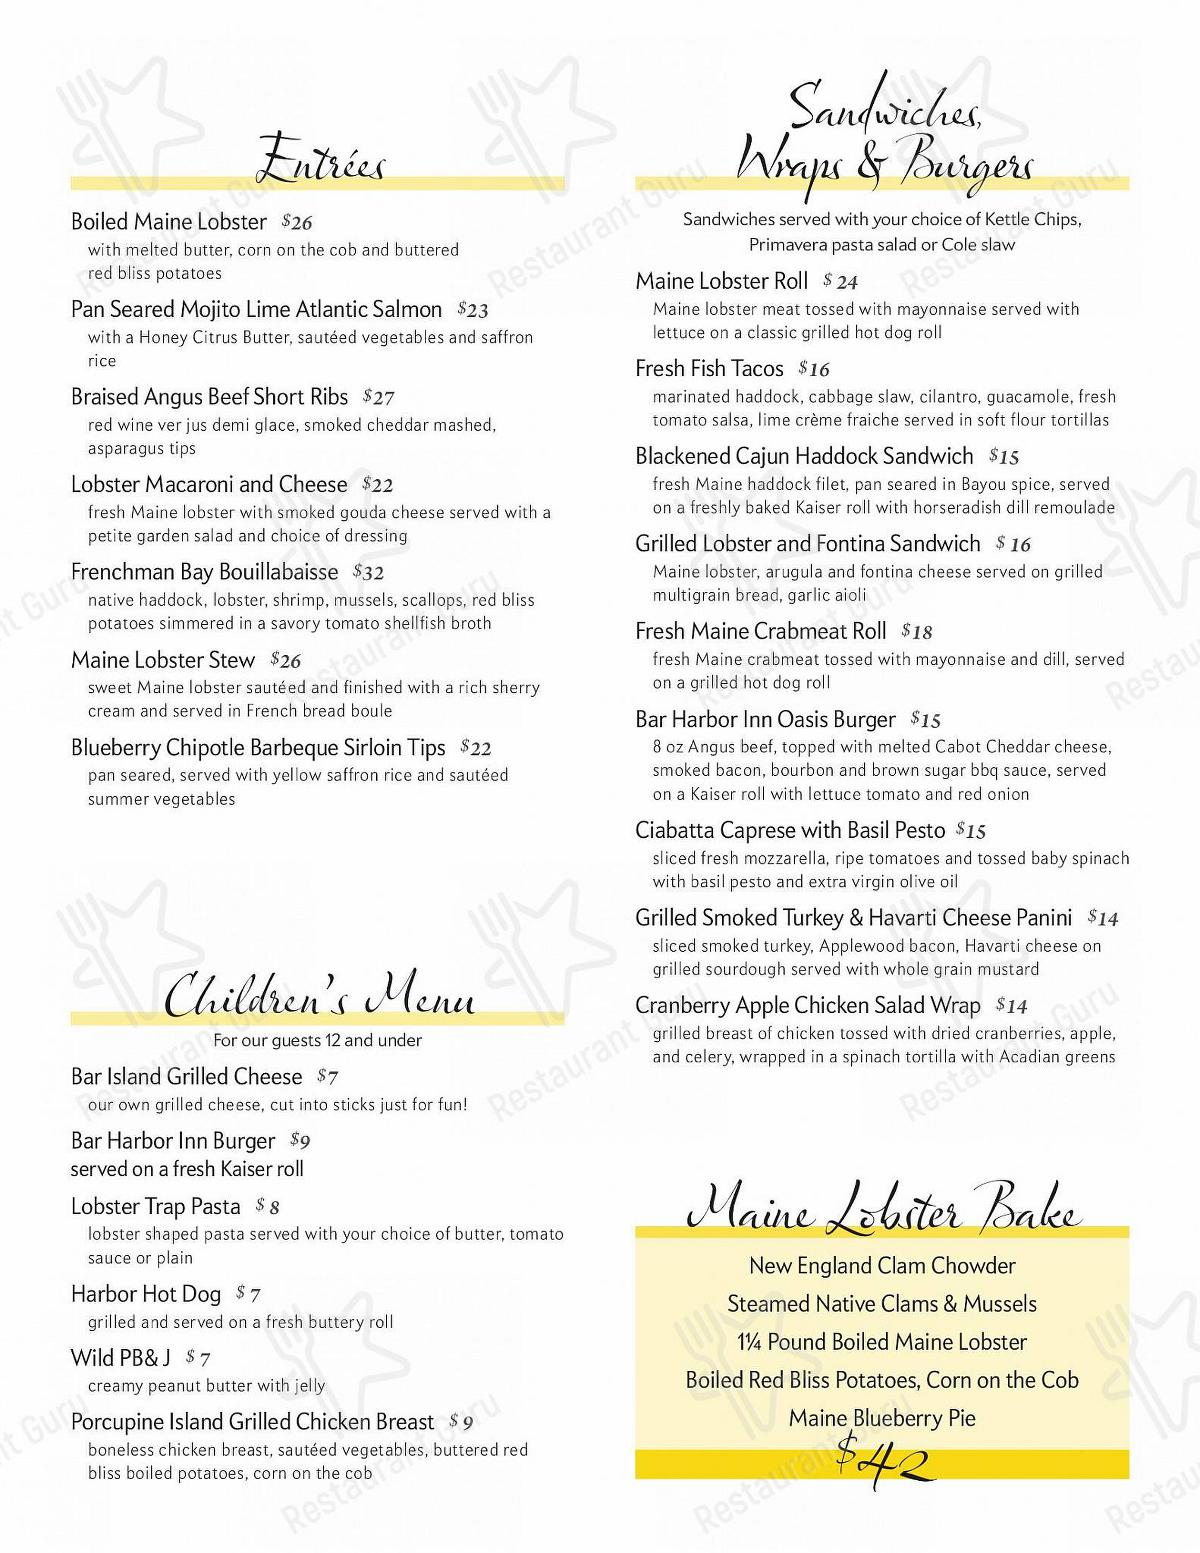 The Terrace Grille menu - meals and drinks